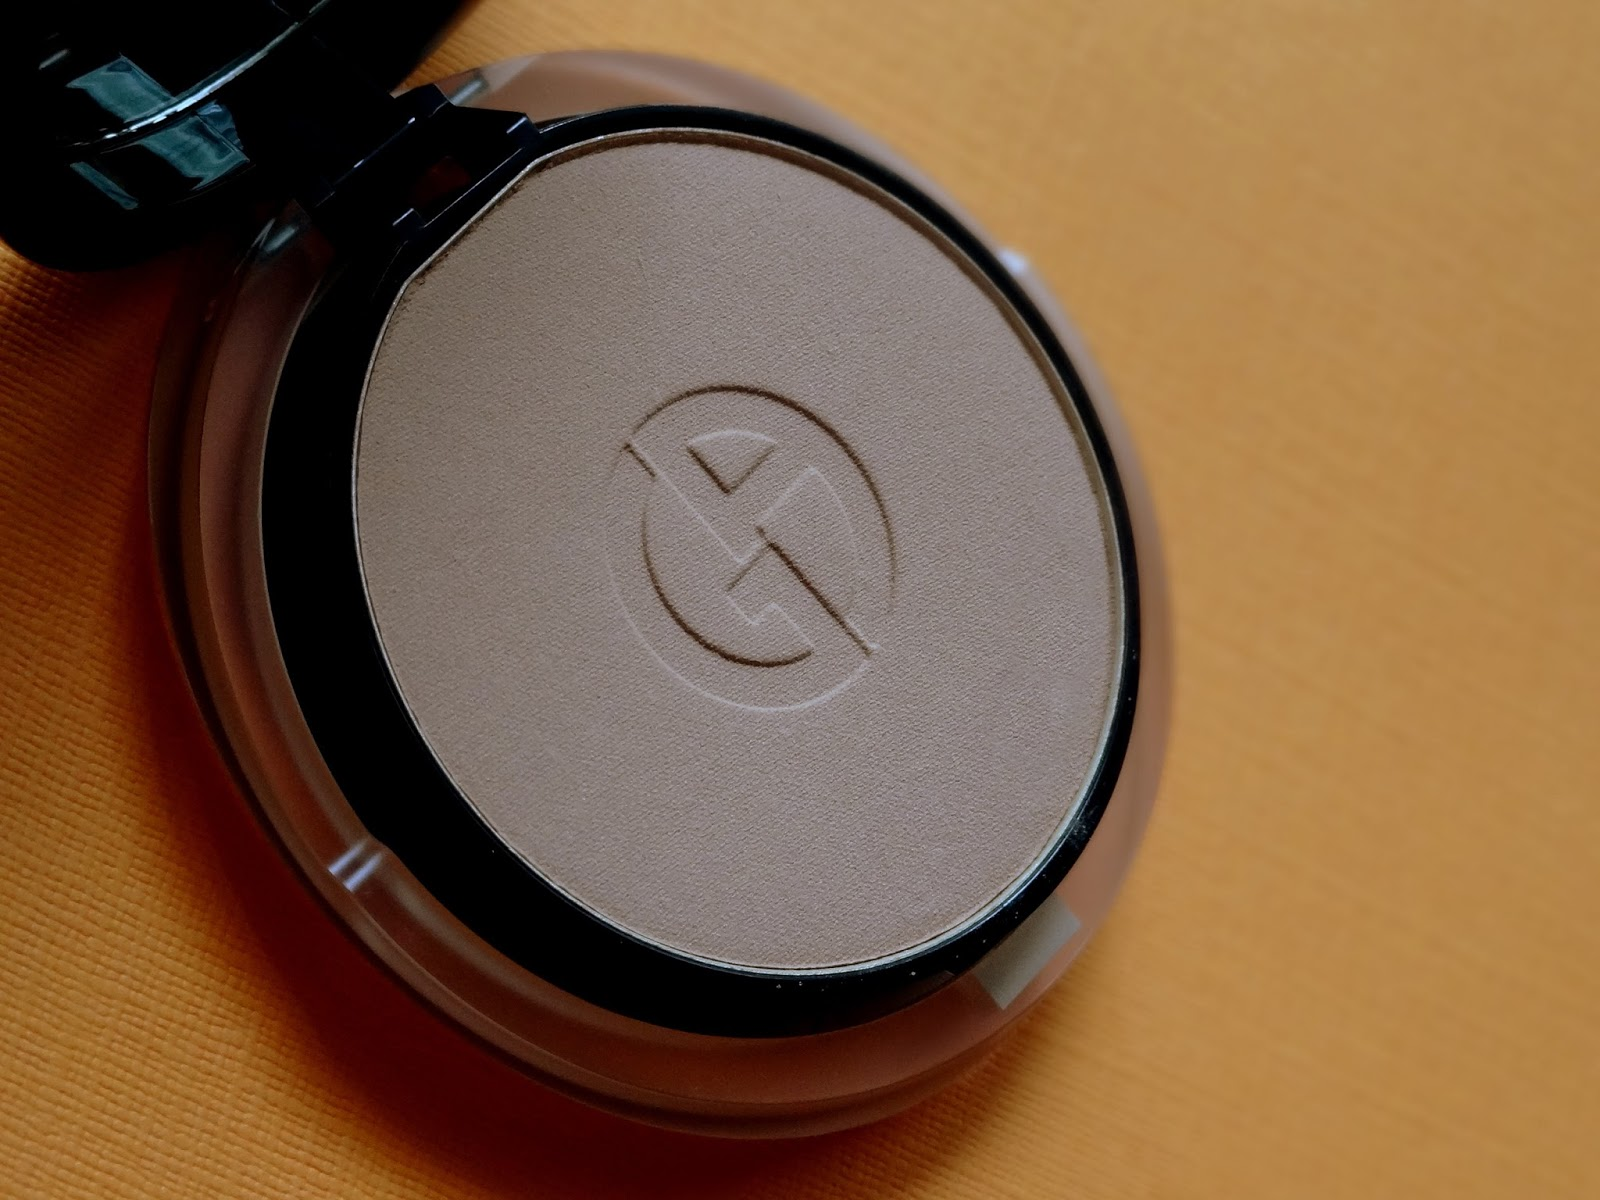 Lasting Silk 5.5 Silk Compact in 5.5 Review